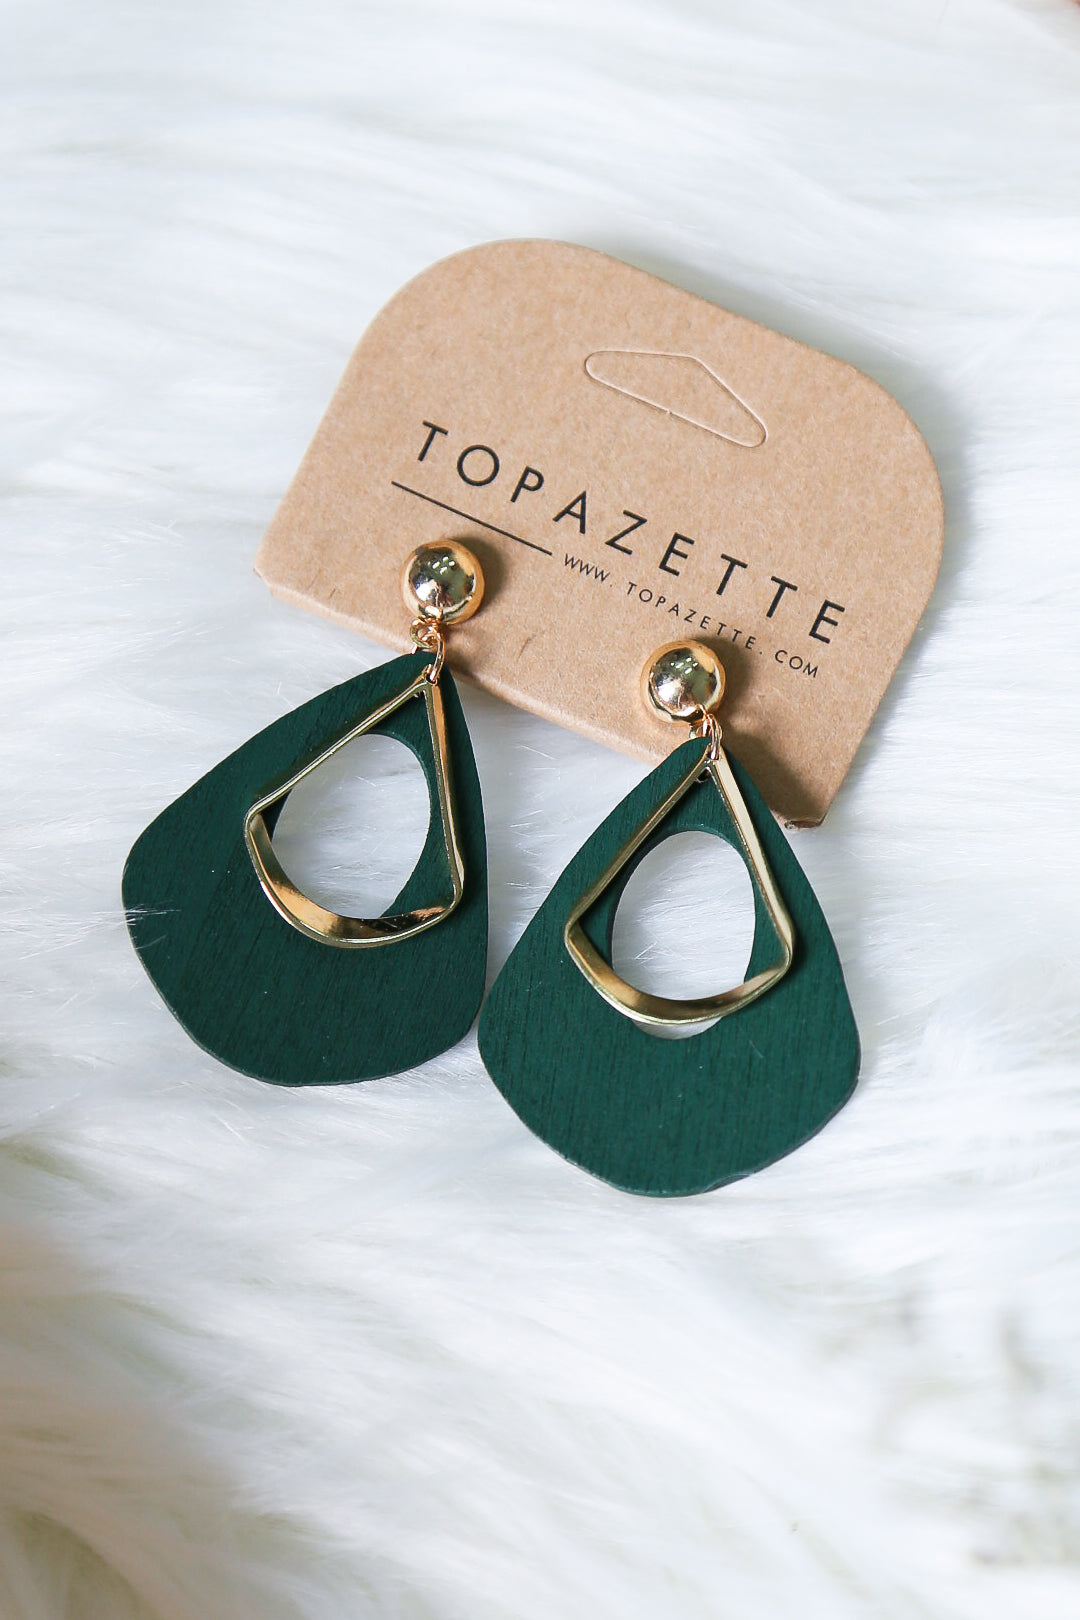 *RESTOCKED* IMOGEN EARRINGS